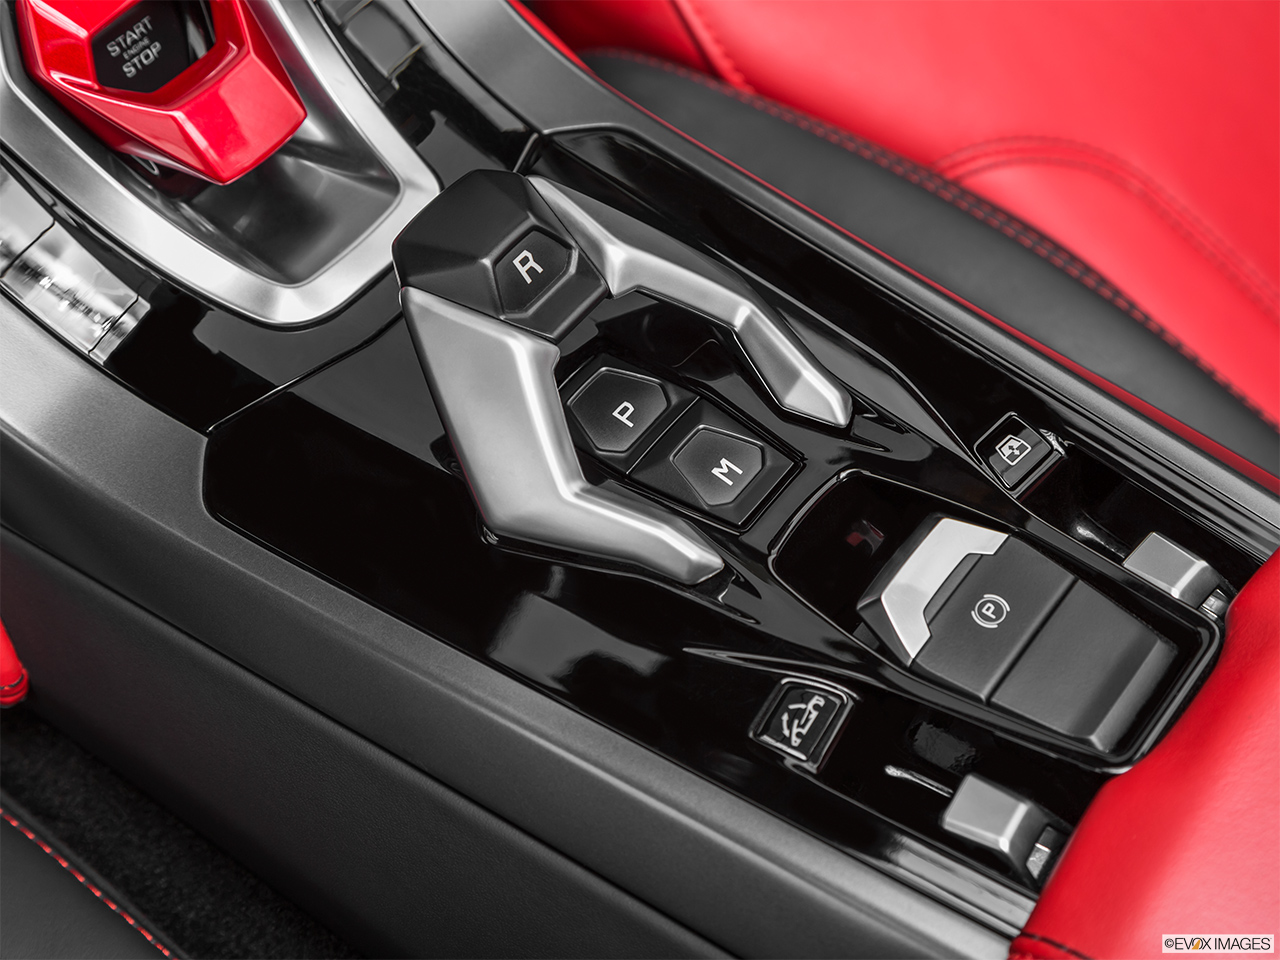 2019 Lamborghini Huracan Spyder LP580-2S Gear shifter/center console.